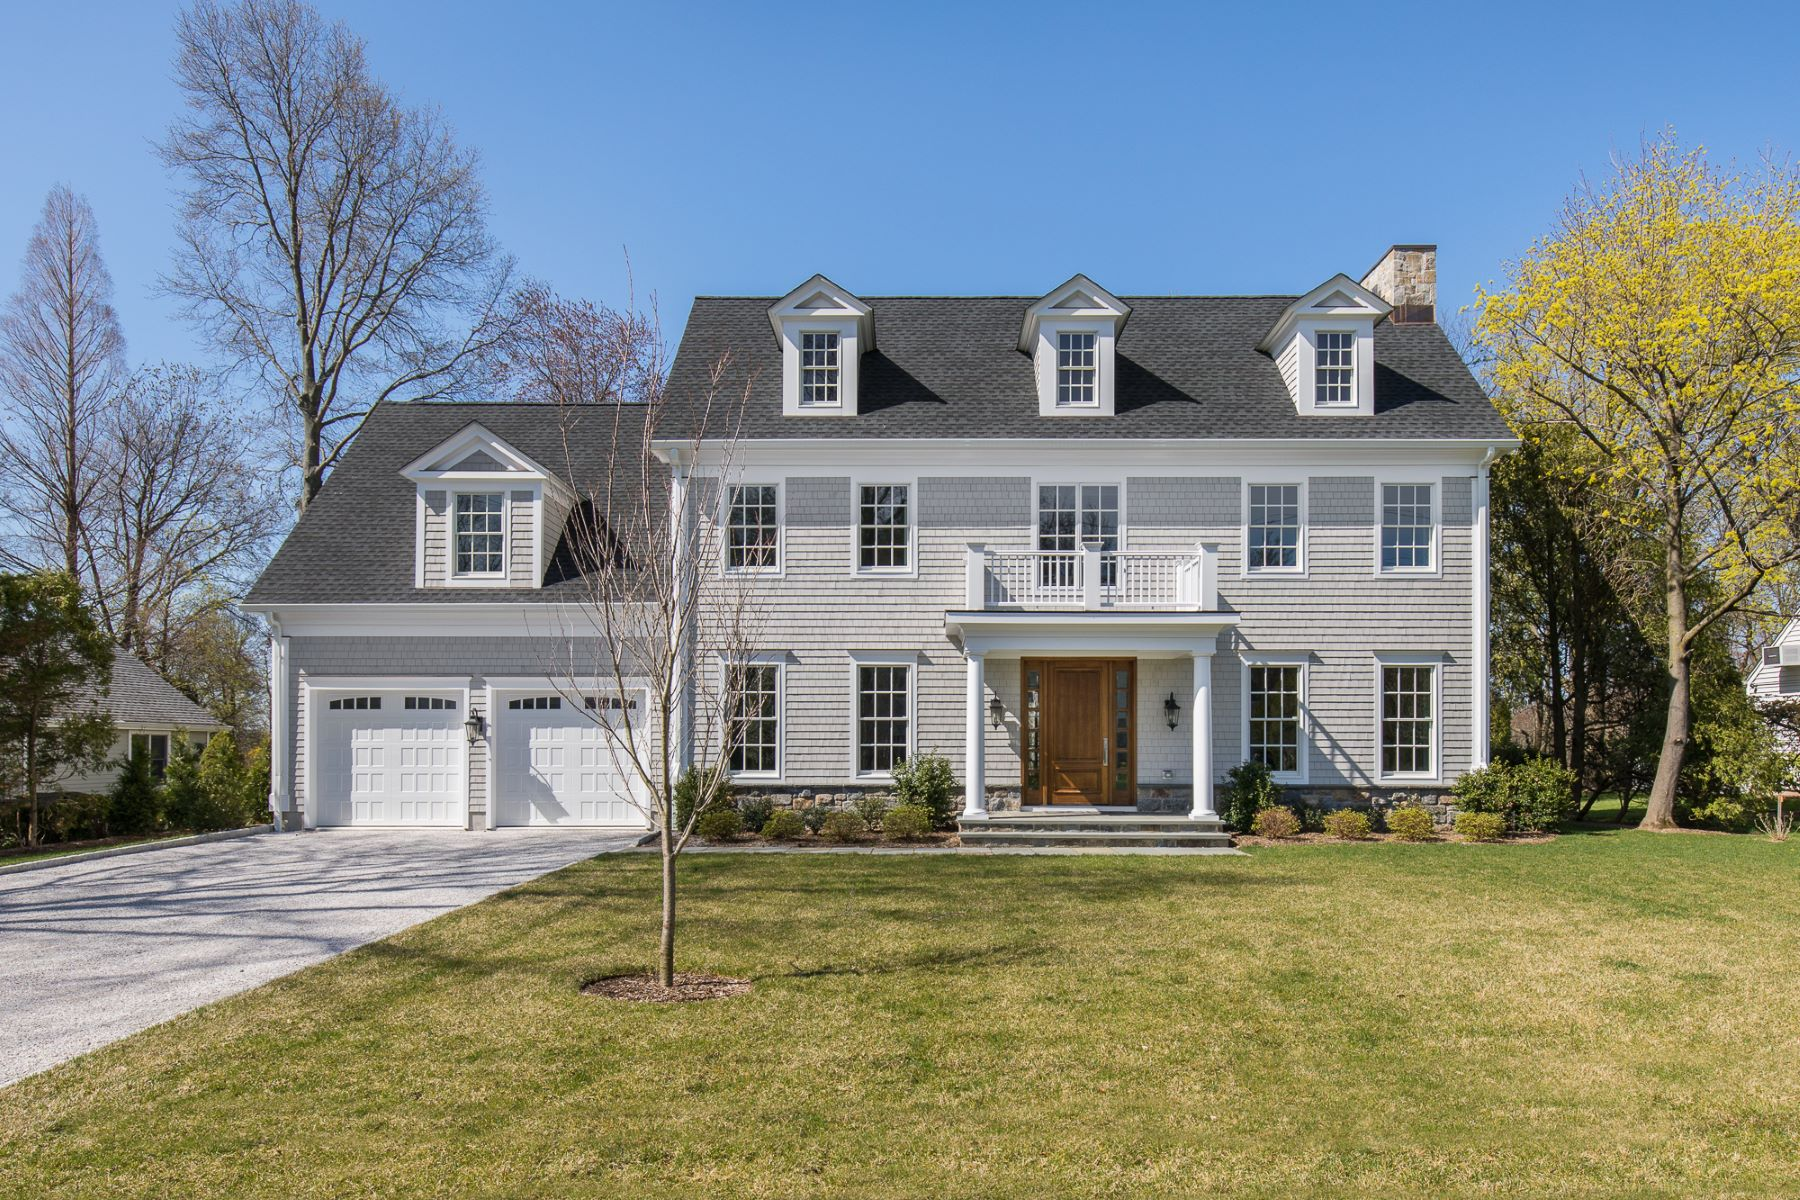 Single Family Home for Sale at Stunning Elegant New Construction in Scarsdale 11 Continental Road Scarsdale, New York 10583 United States